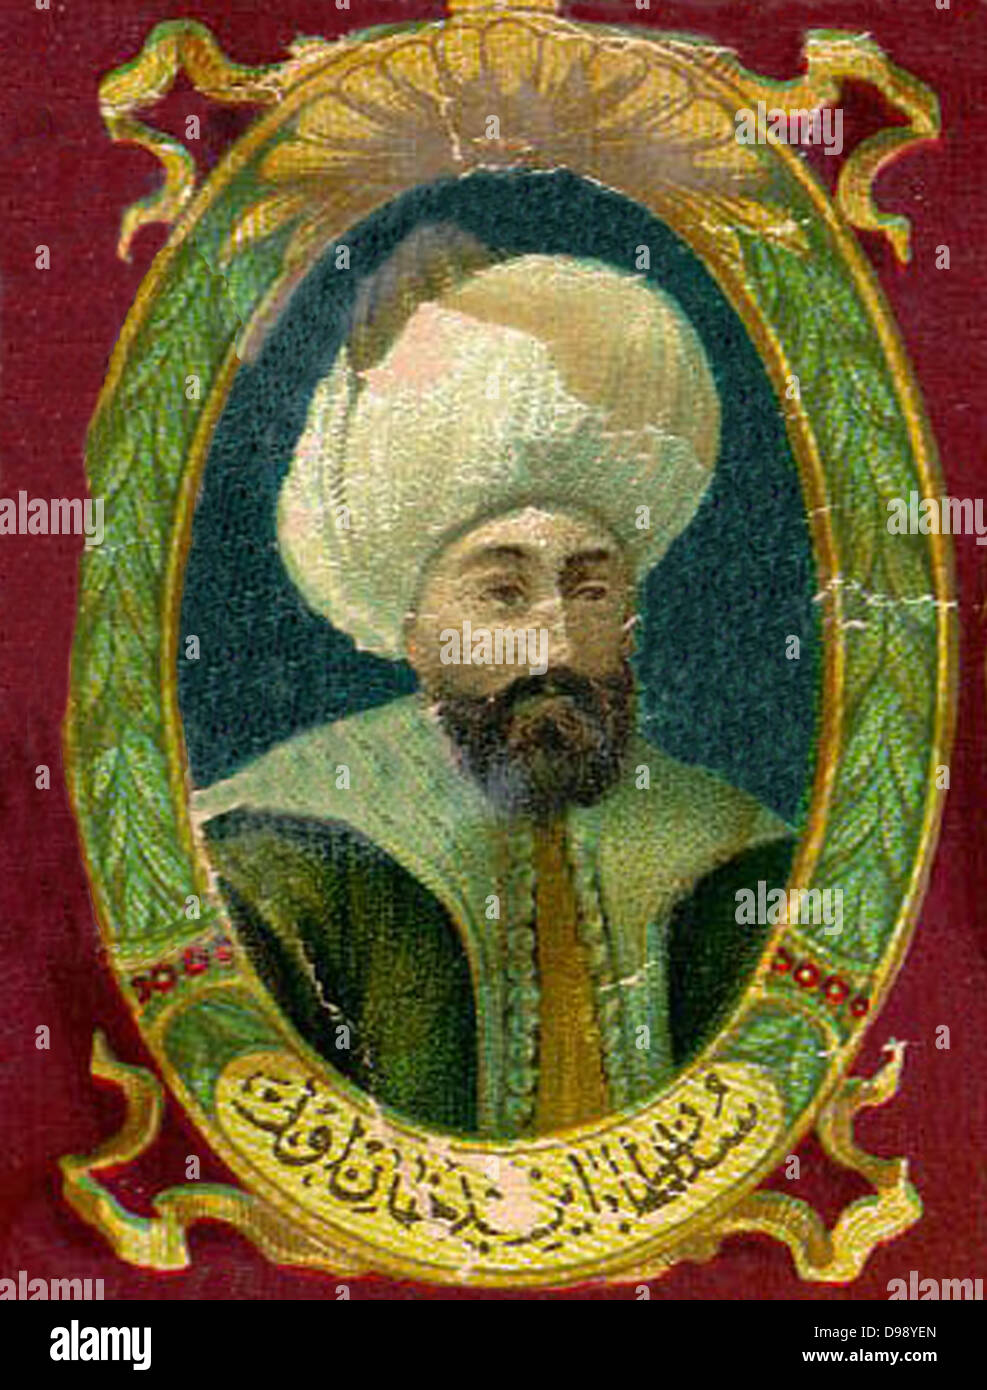 Bayezid I 'the Thunderbolt'; 1360 – March 8, 1403) Sultan of the Ottoman Empire, from 1389 to 1402. - Stock Image